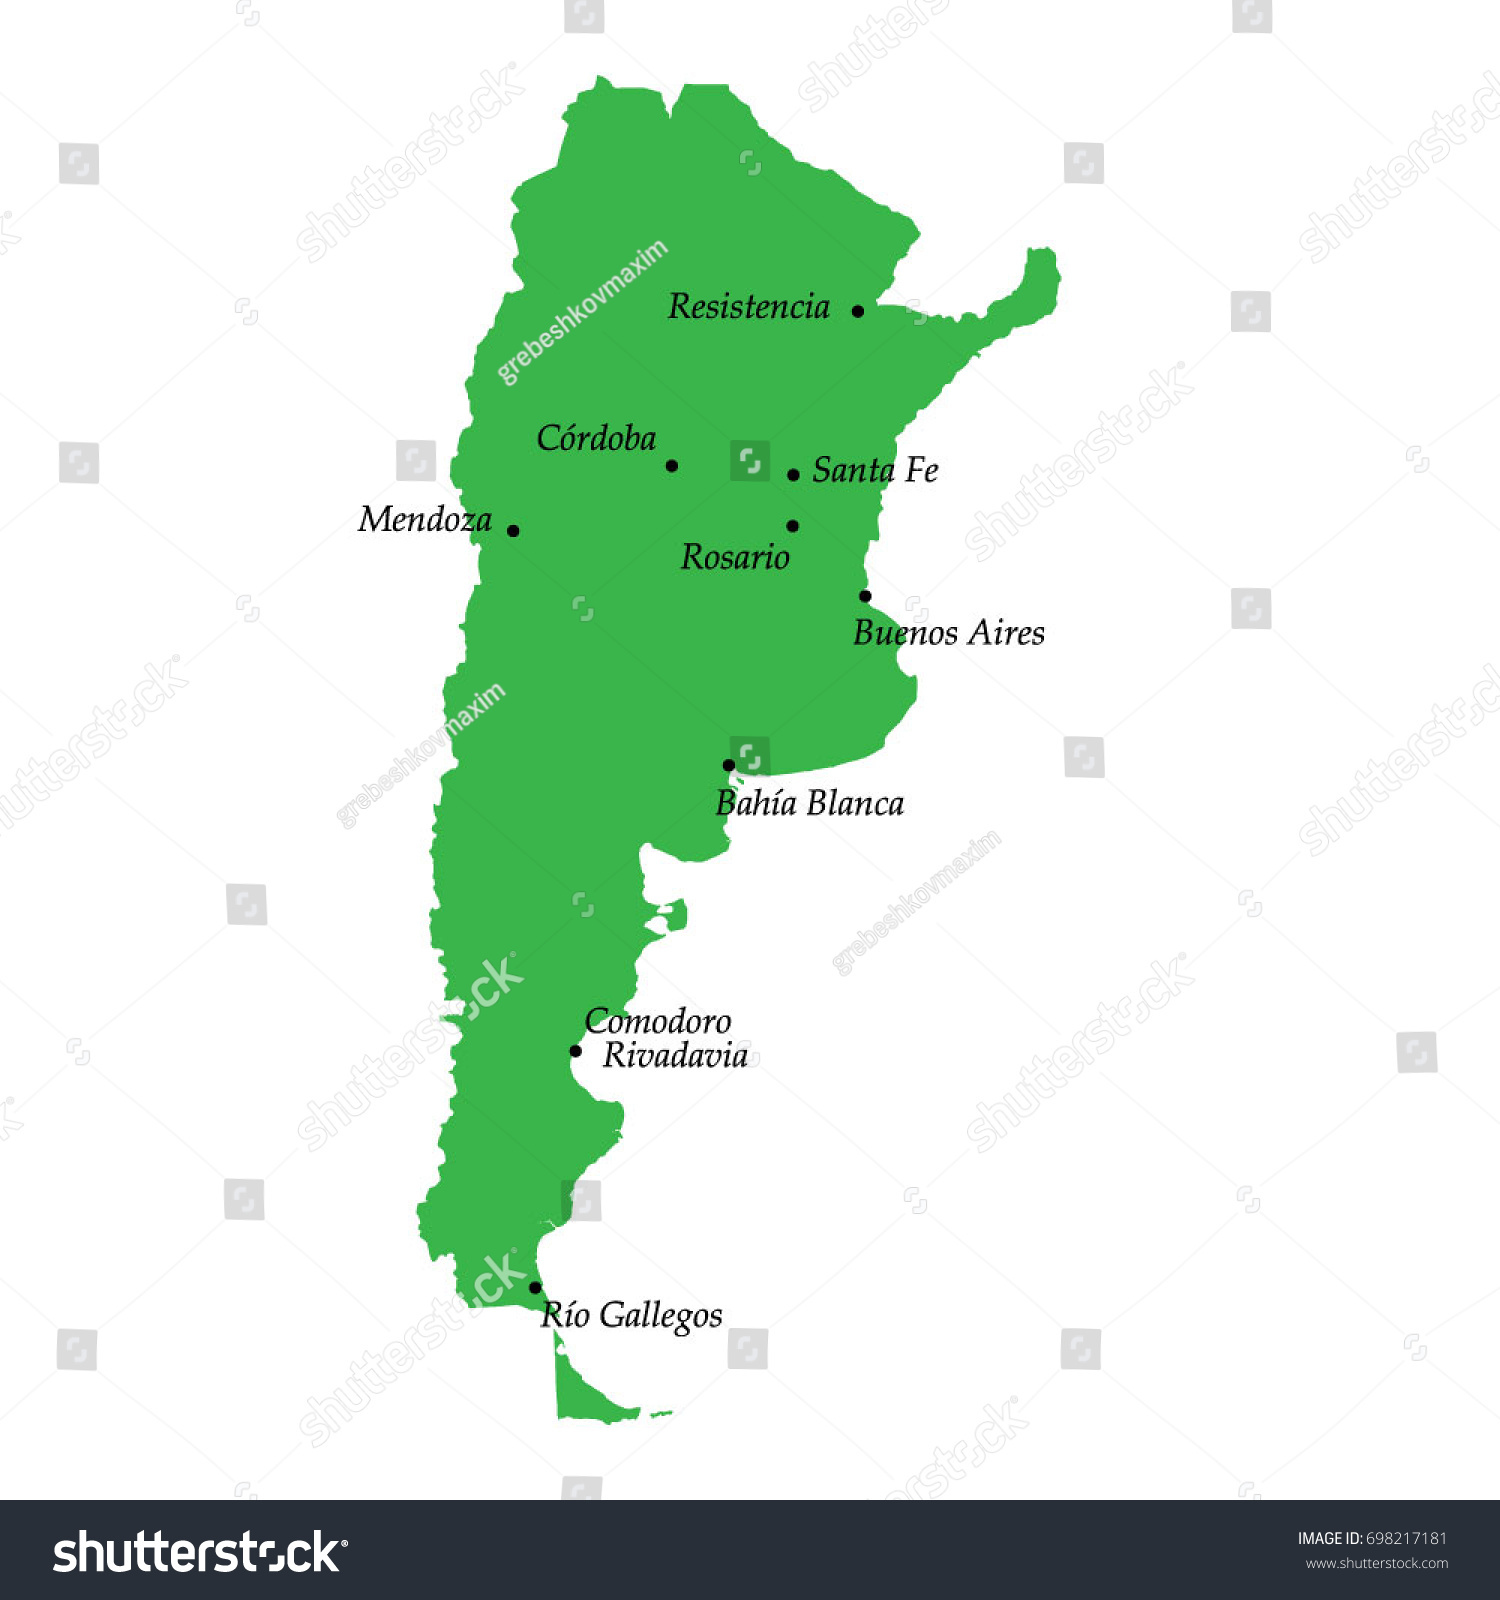 major cities in argentina on a map Map Argentina Main Cities Stock Vector Royalty Free 698217181 major cities in argentina on a map